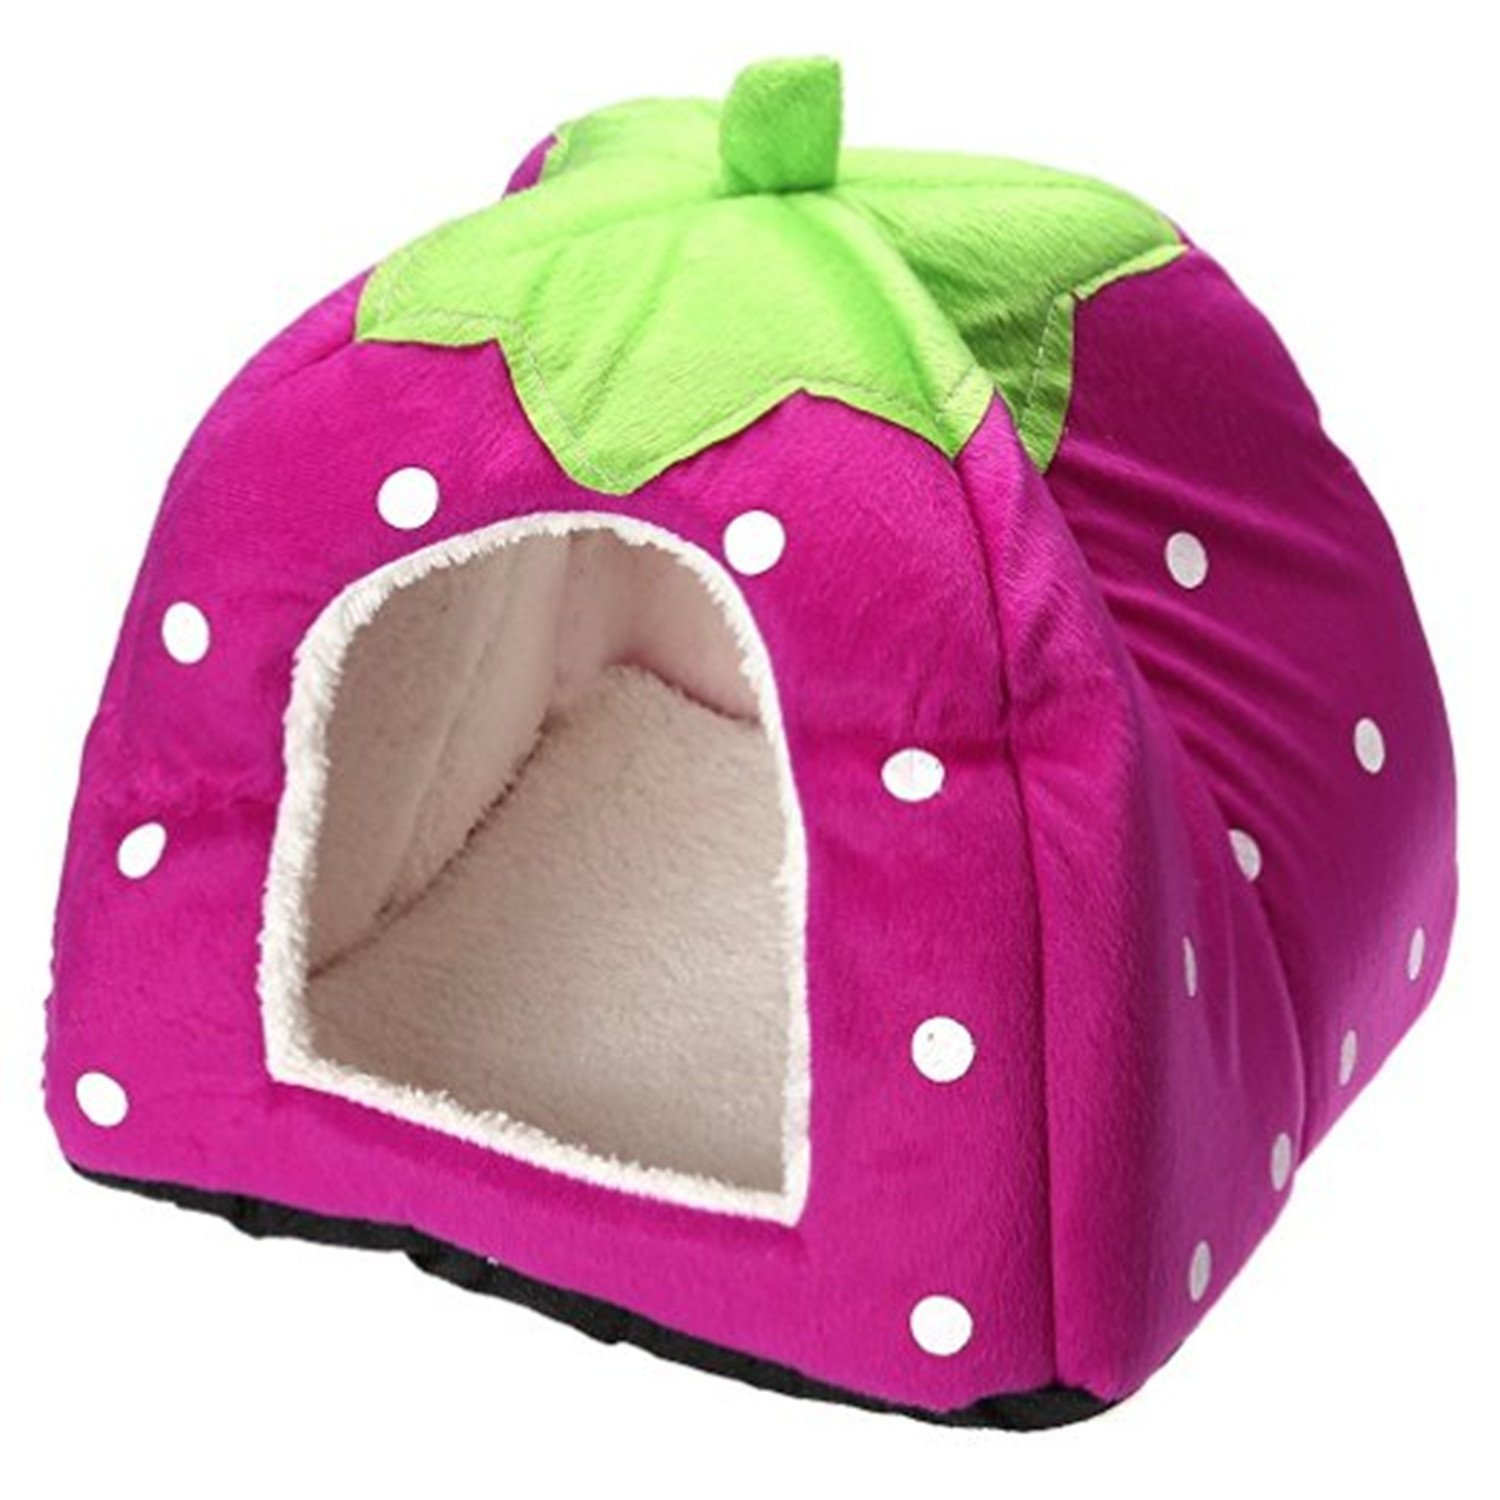 Century Star Rabbit Dog Cat Pet Bed Small Big Animal Snuggle Puppy Supplies Indoor Beds House Purple M